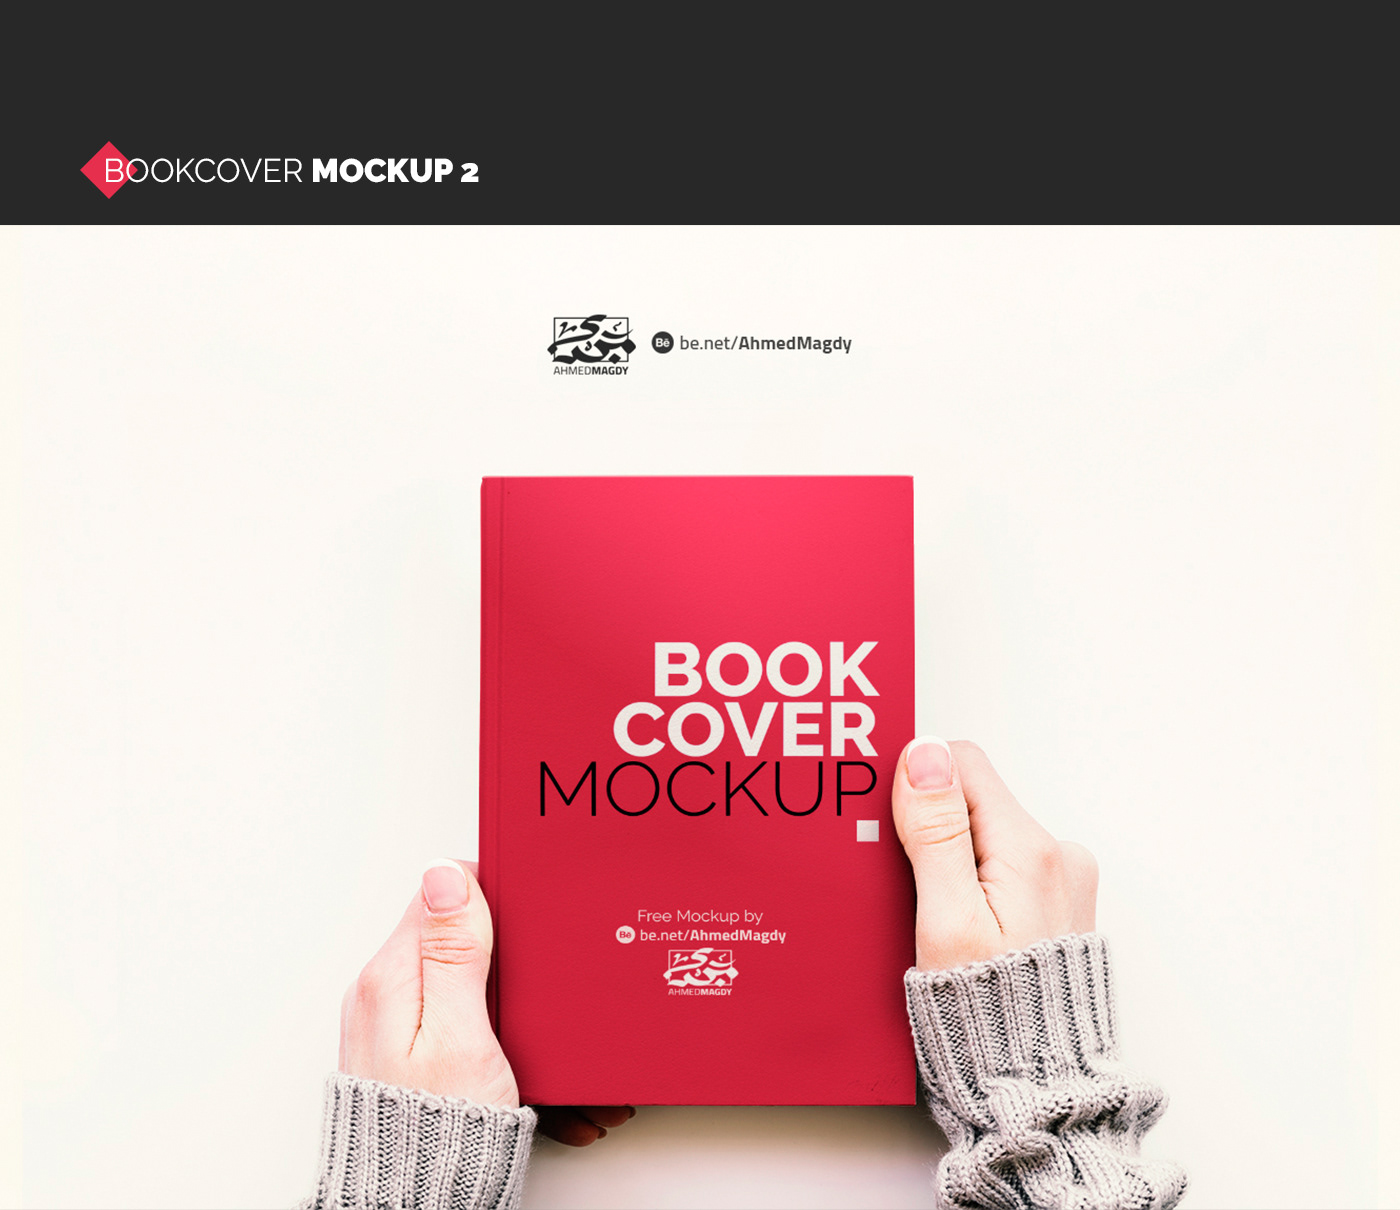 Mockup bookcover book mockup psd book in hand girl hands cover mockup free